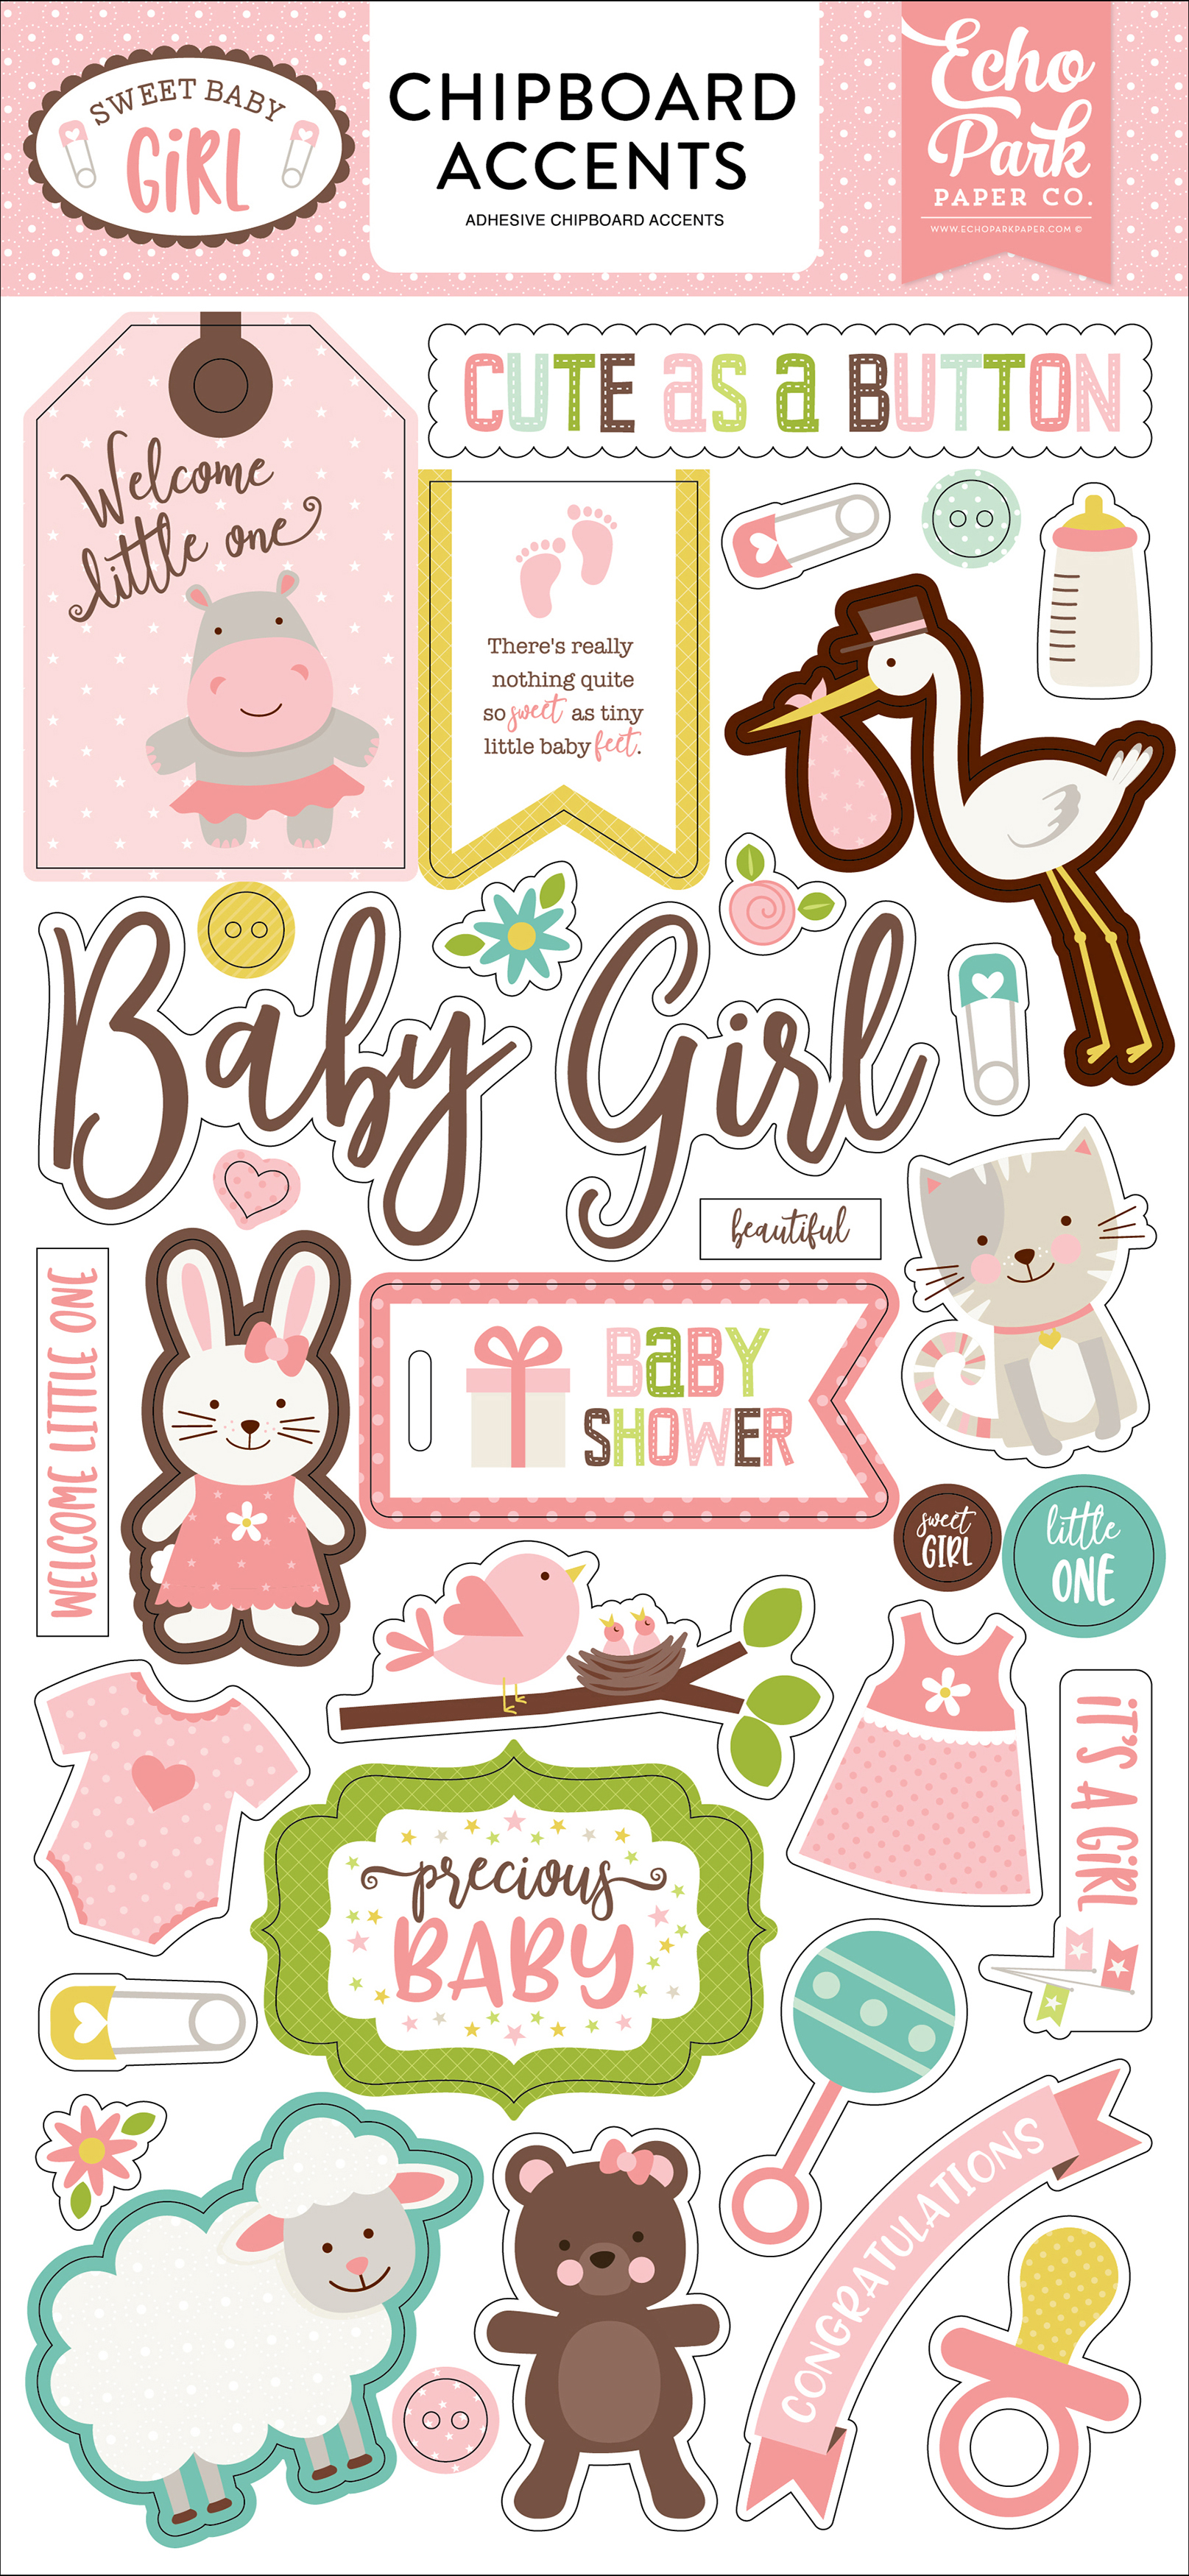 Echo Park Sweet Baby Girl Chipboard Accents